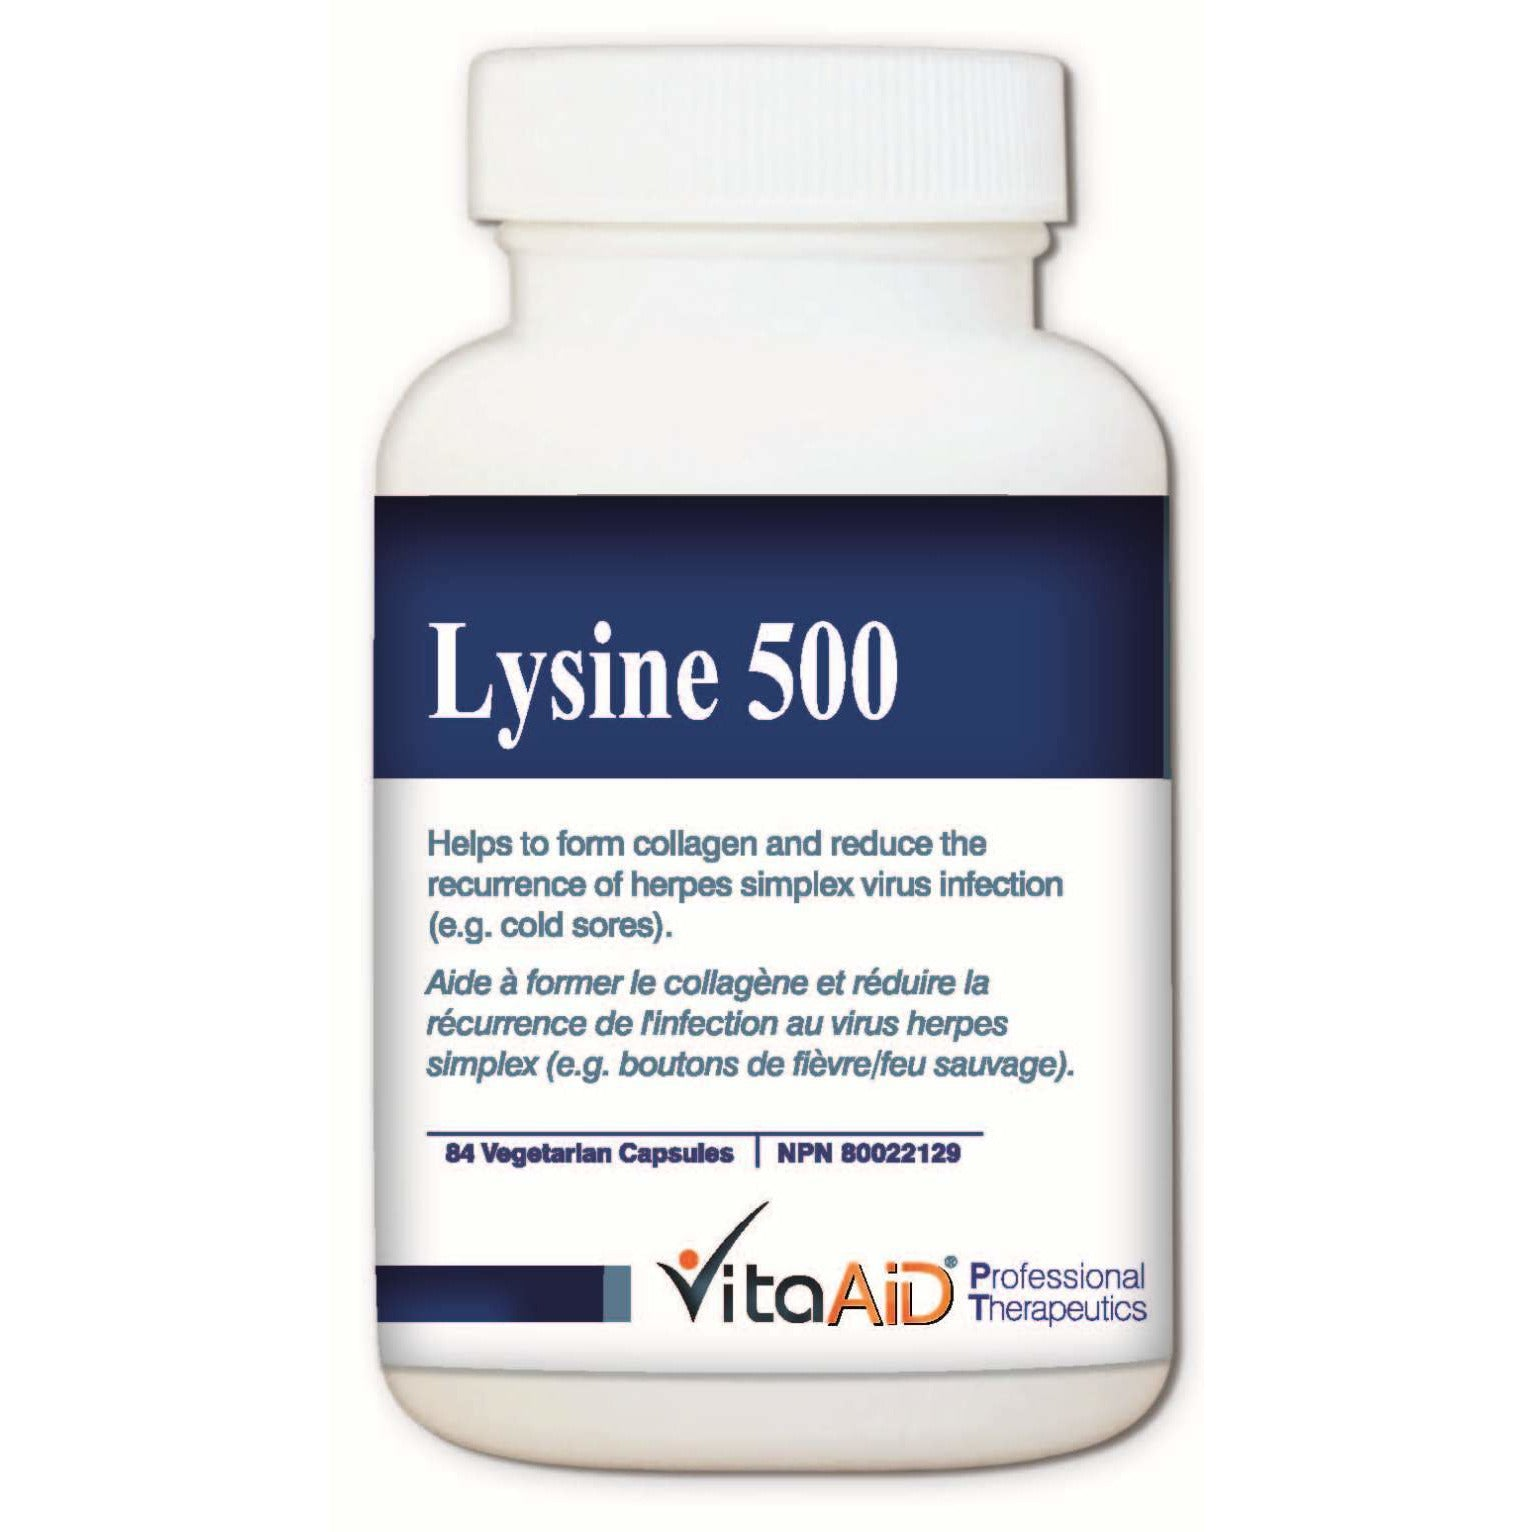 Lysine 500 Help reduce the recurrence of herpes simplex virus (HSV) infections (eg. cold sores) 84 veg caps